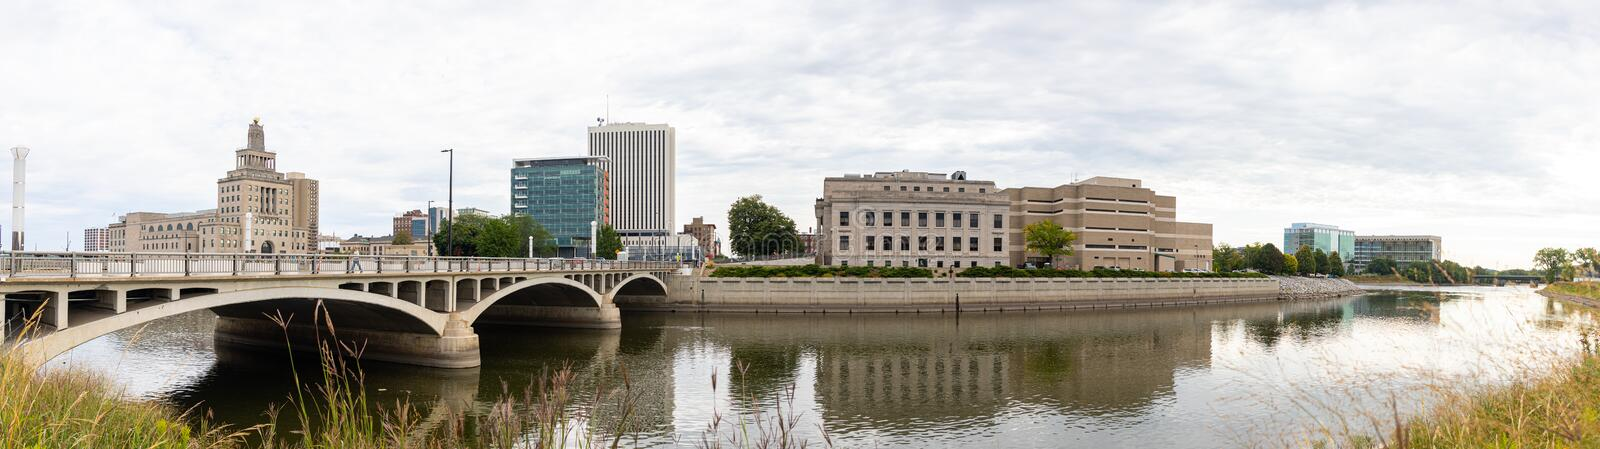 The City Of Cedar Rapids. Cedar Rapids, city in the state of Iowa, United States of America, as seen across the Cedar River royalty free stock photo